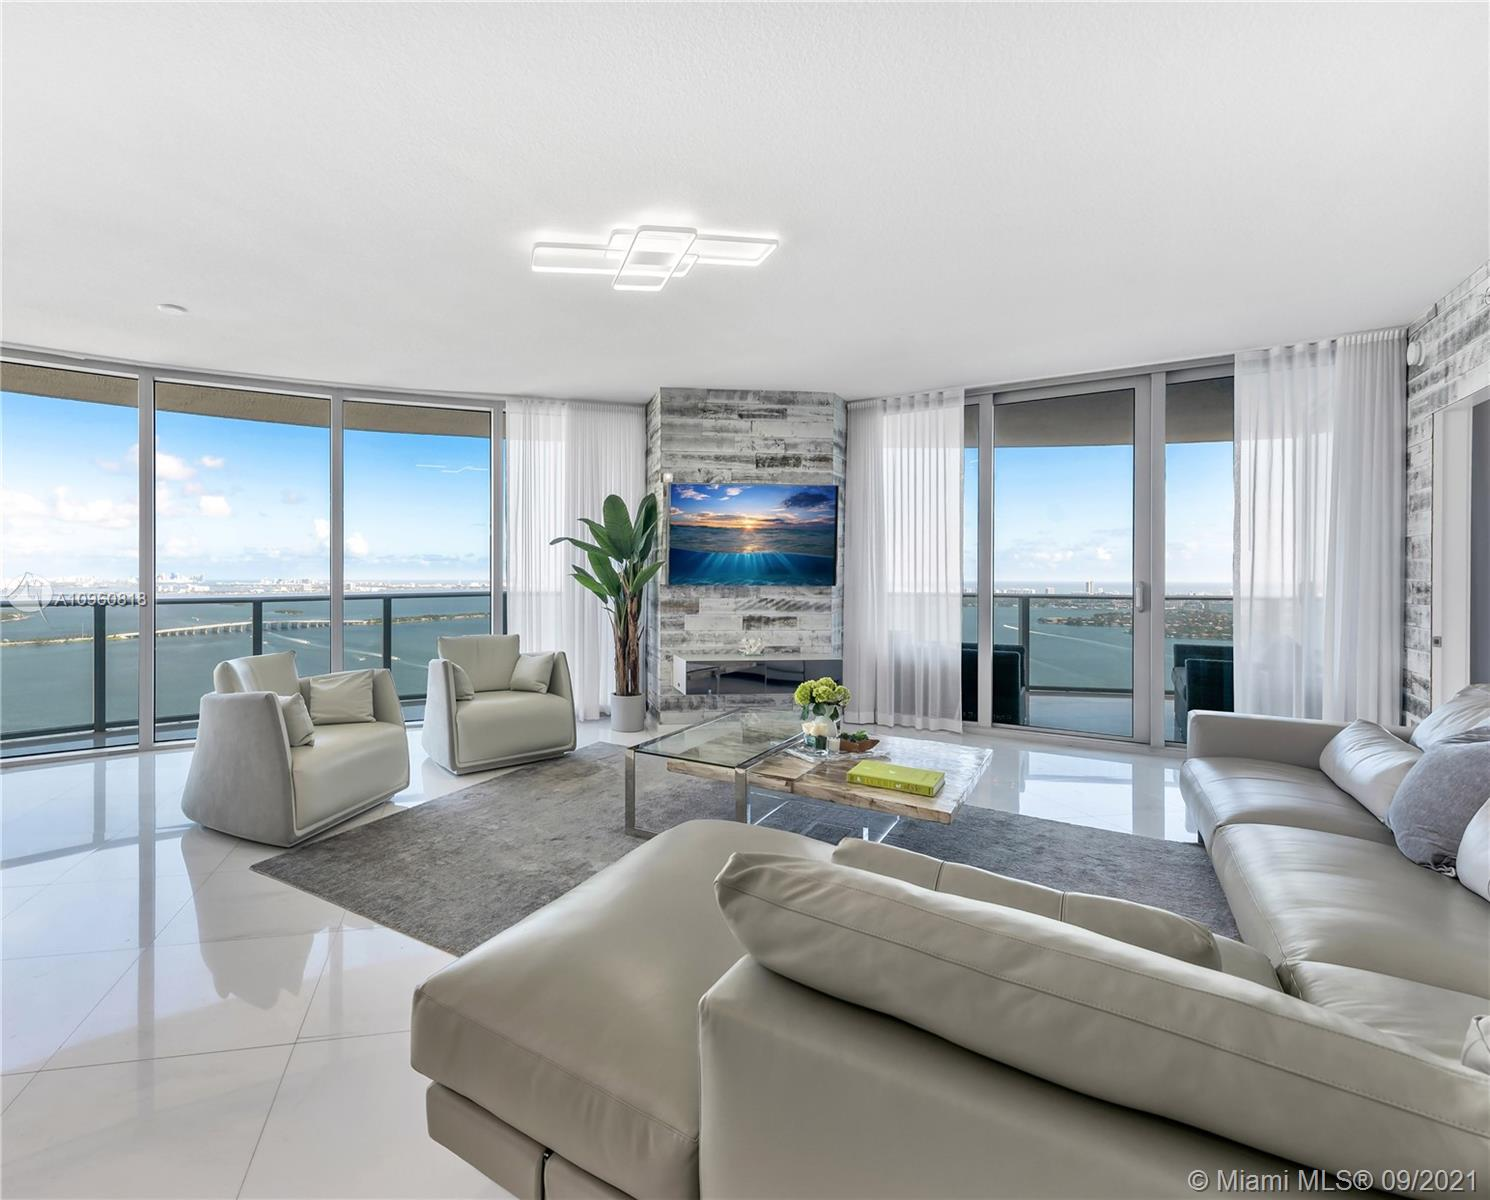 Rarely available! Exclusive Lower Penthouse with highly prized unobstructed breathtaking panoramic views of Biscayne Bay and the Miami Skyline. One-of-a-kind very private residence has high-end custom upgrades: beautiful light Marble floors throughout from the private welcoming foyer to the wrap around balcony. Custom closets and cabinets, motorized black out shades in all bedrooms, elegant custom drapes and more.  Well appointed open layout Italkraft Kitchen. Unit has two side by side premium large parking spaces. Luxury resort amenities, two pools, state-of-the-art gym, steam room, sauna, teen lounge and kid's playroom, Theatre, Great Room with social areas indoors and outdoors, 24-hour reception and security, Grand Lobby.  Located right across from the lovely Margaret Pace Park.